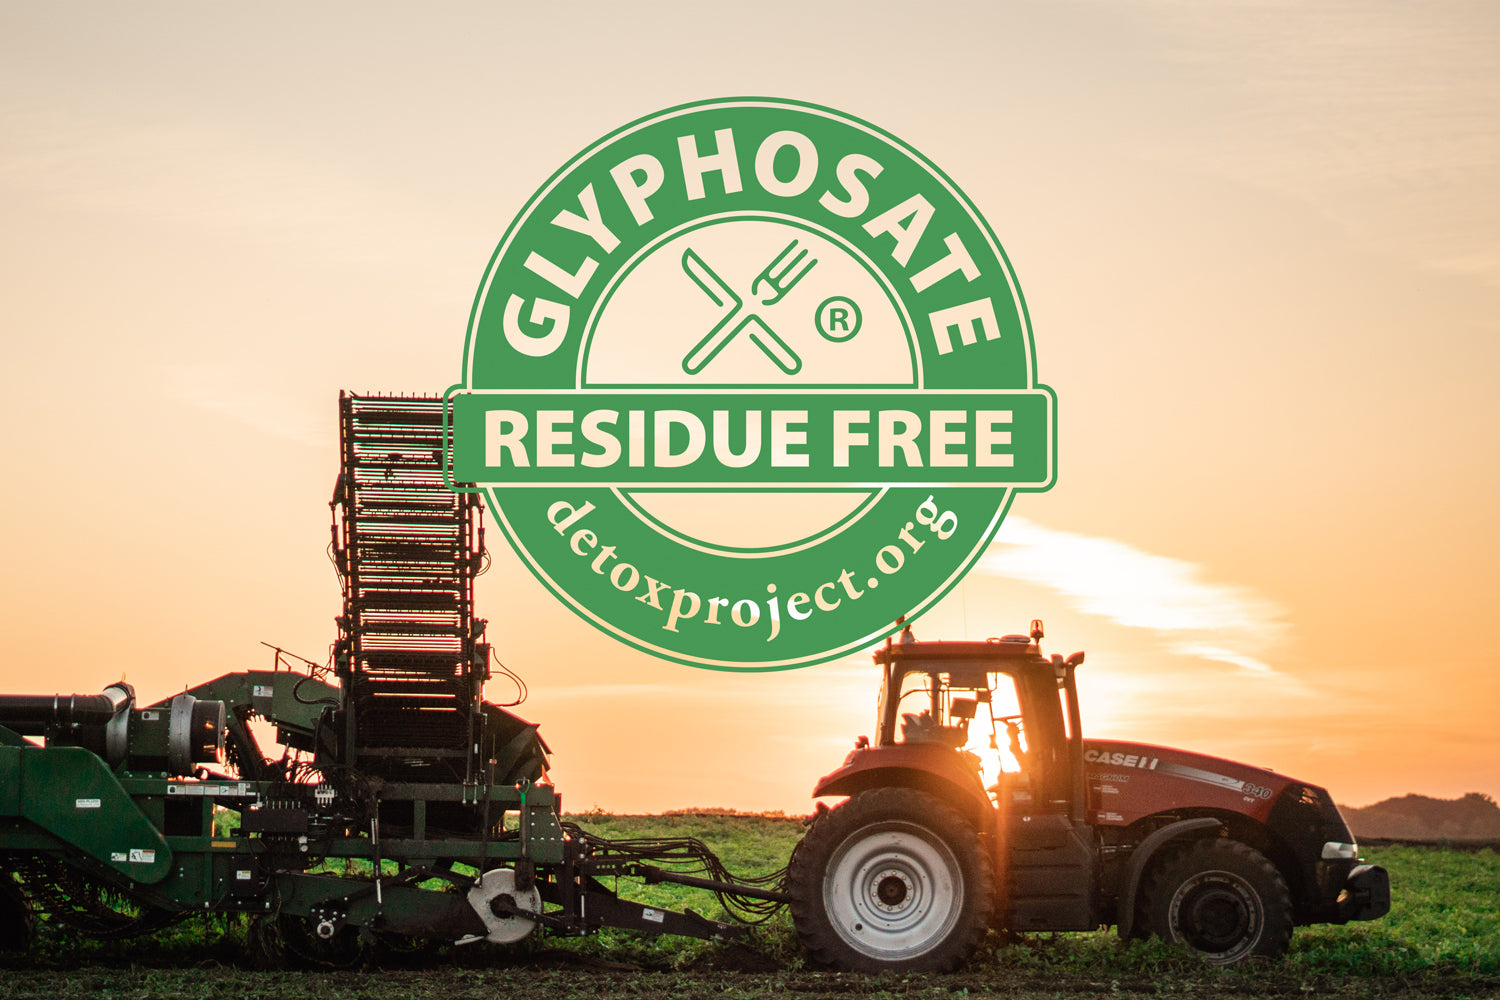 MSPrebiotic Resistant Potato Starch is certified Glyphosate Residue Free by The Detox Project